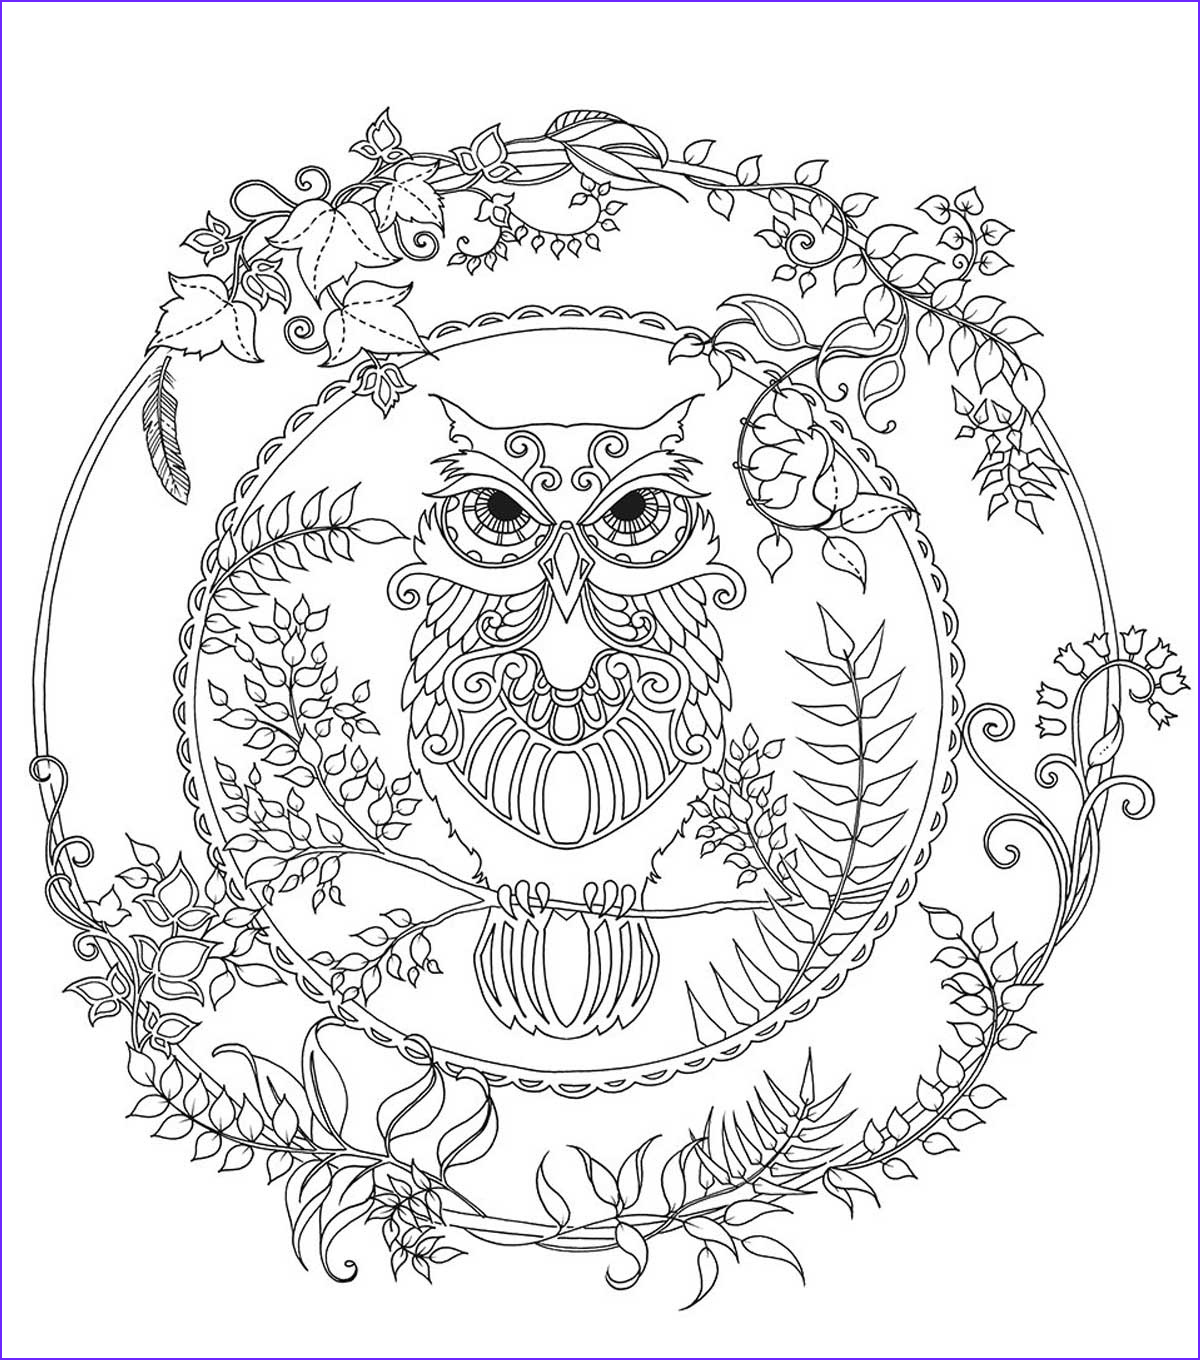 Coloring Book Pictures Beautiful Gallery Chronicle Books Enchanted forest Coloring Book Joann